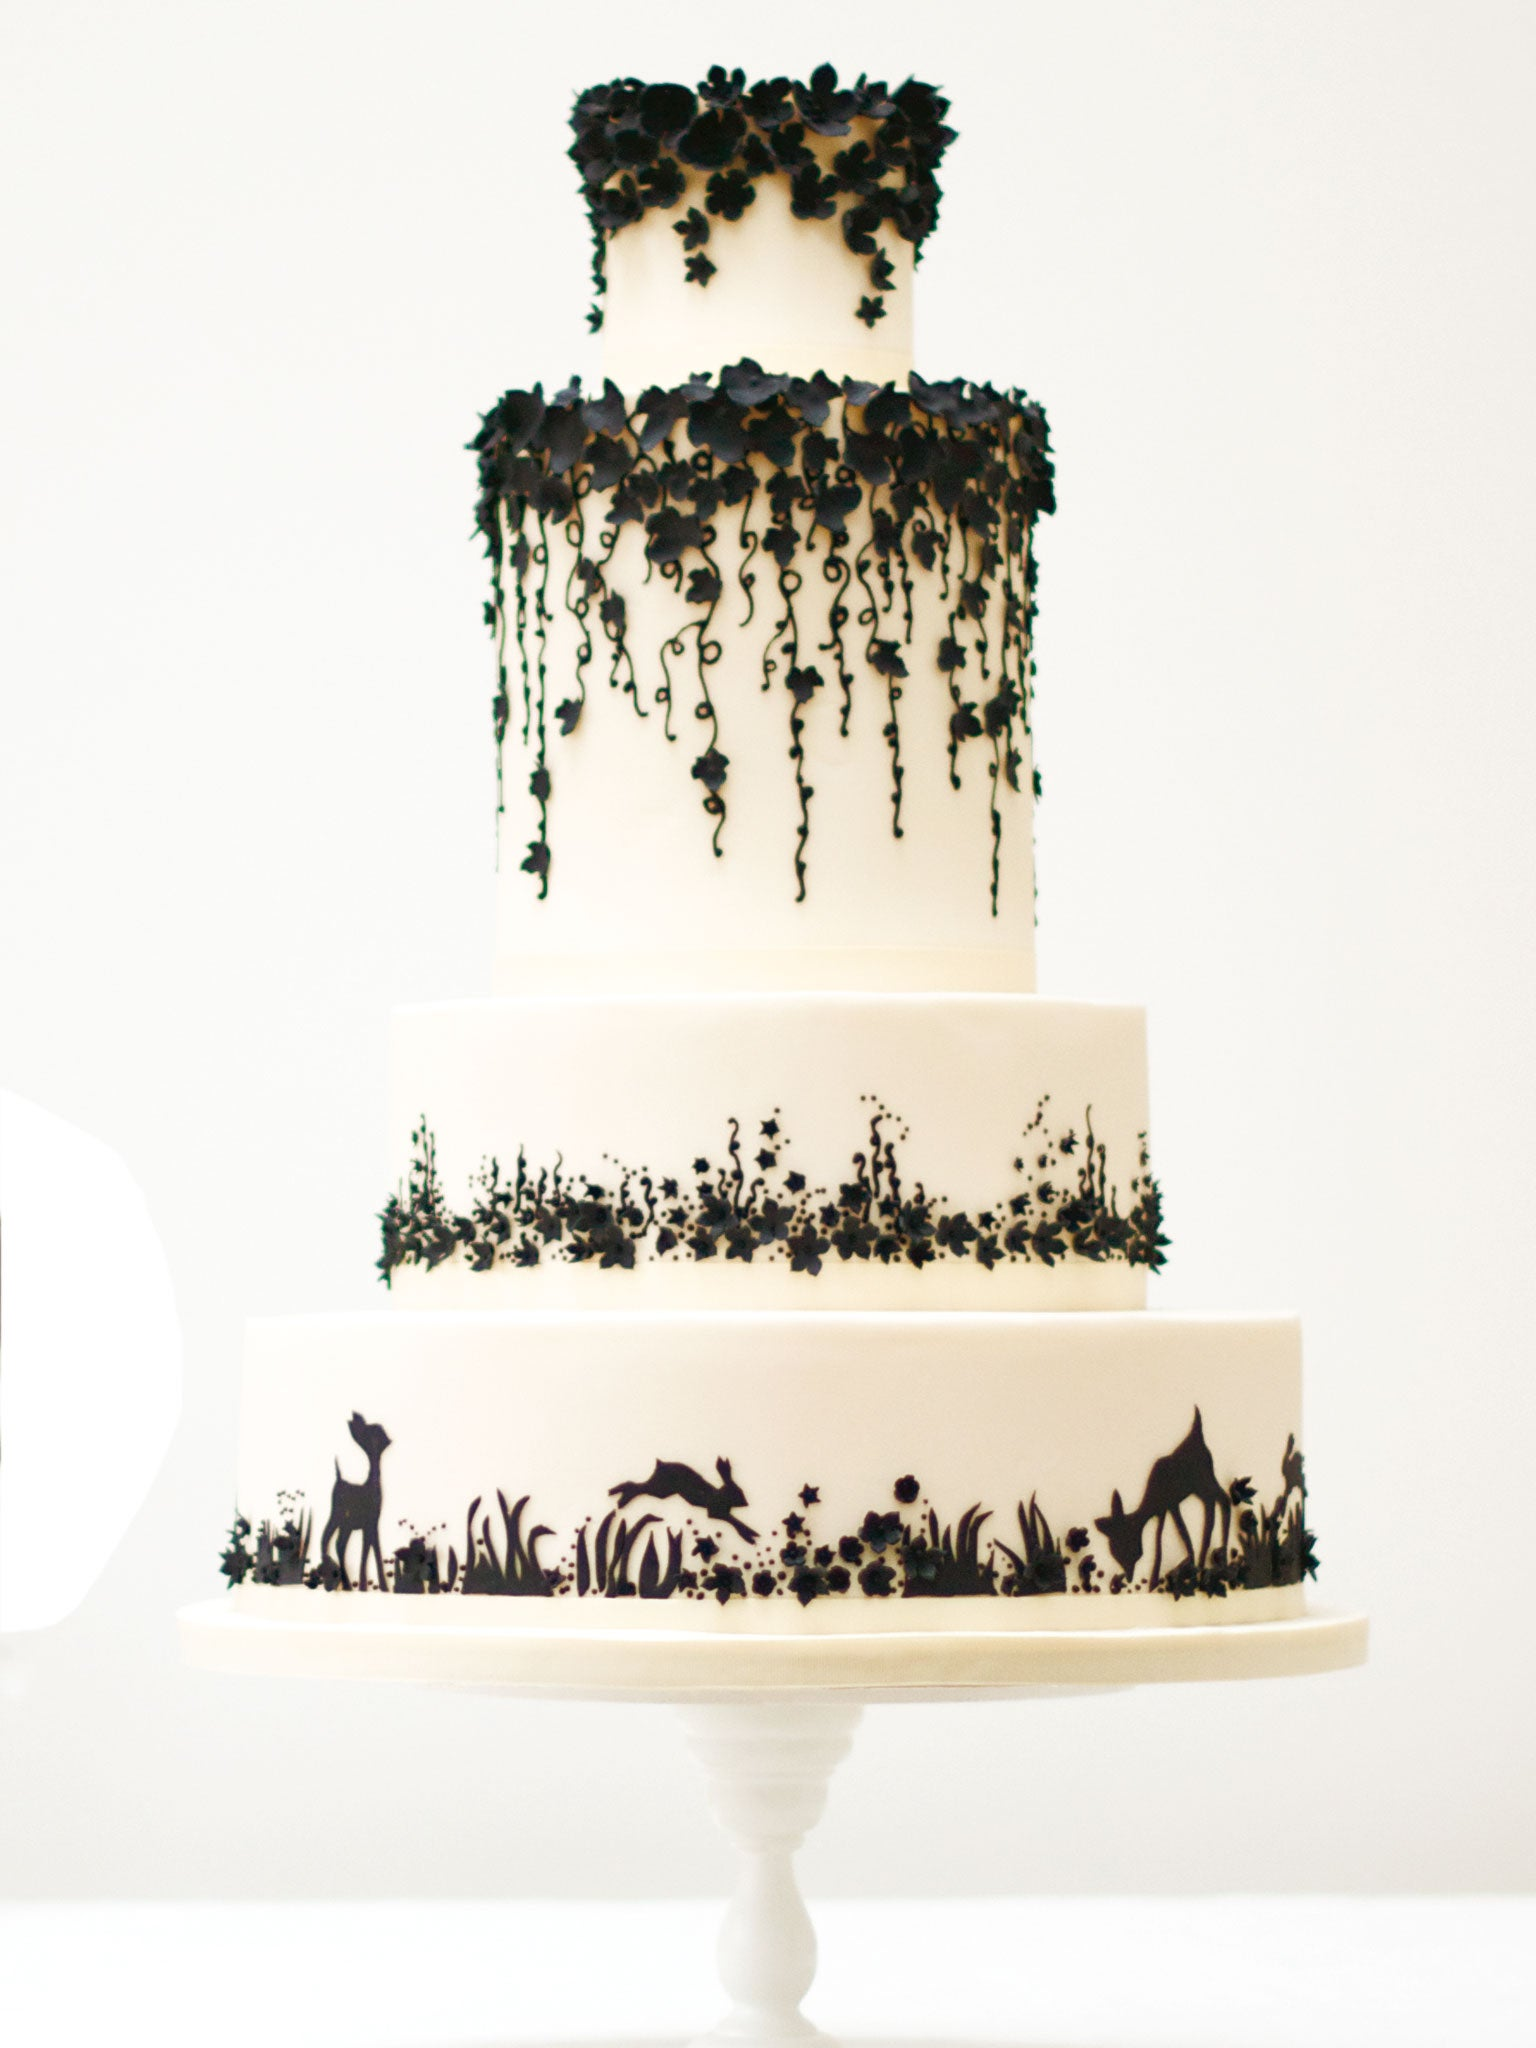 The most beautiful wedding cakes: Wedding cake design awards